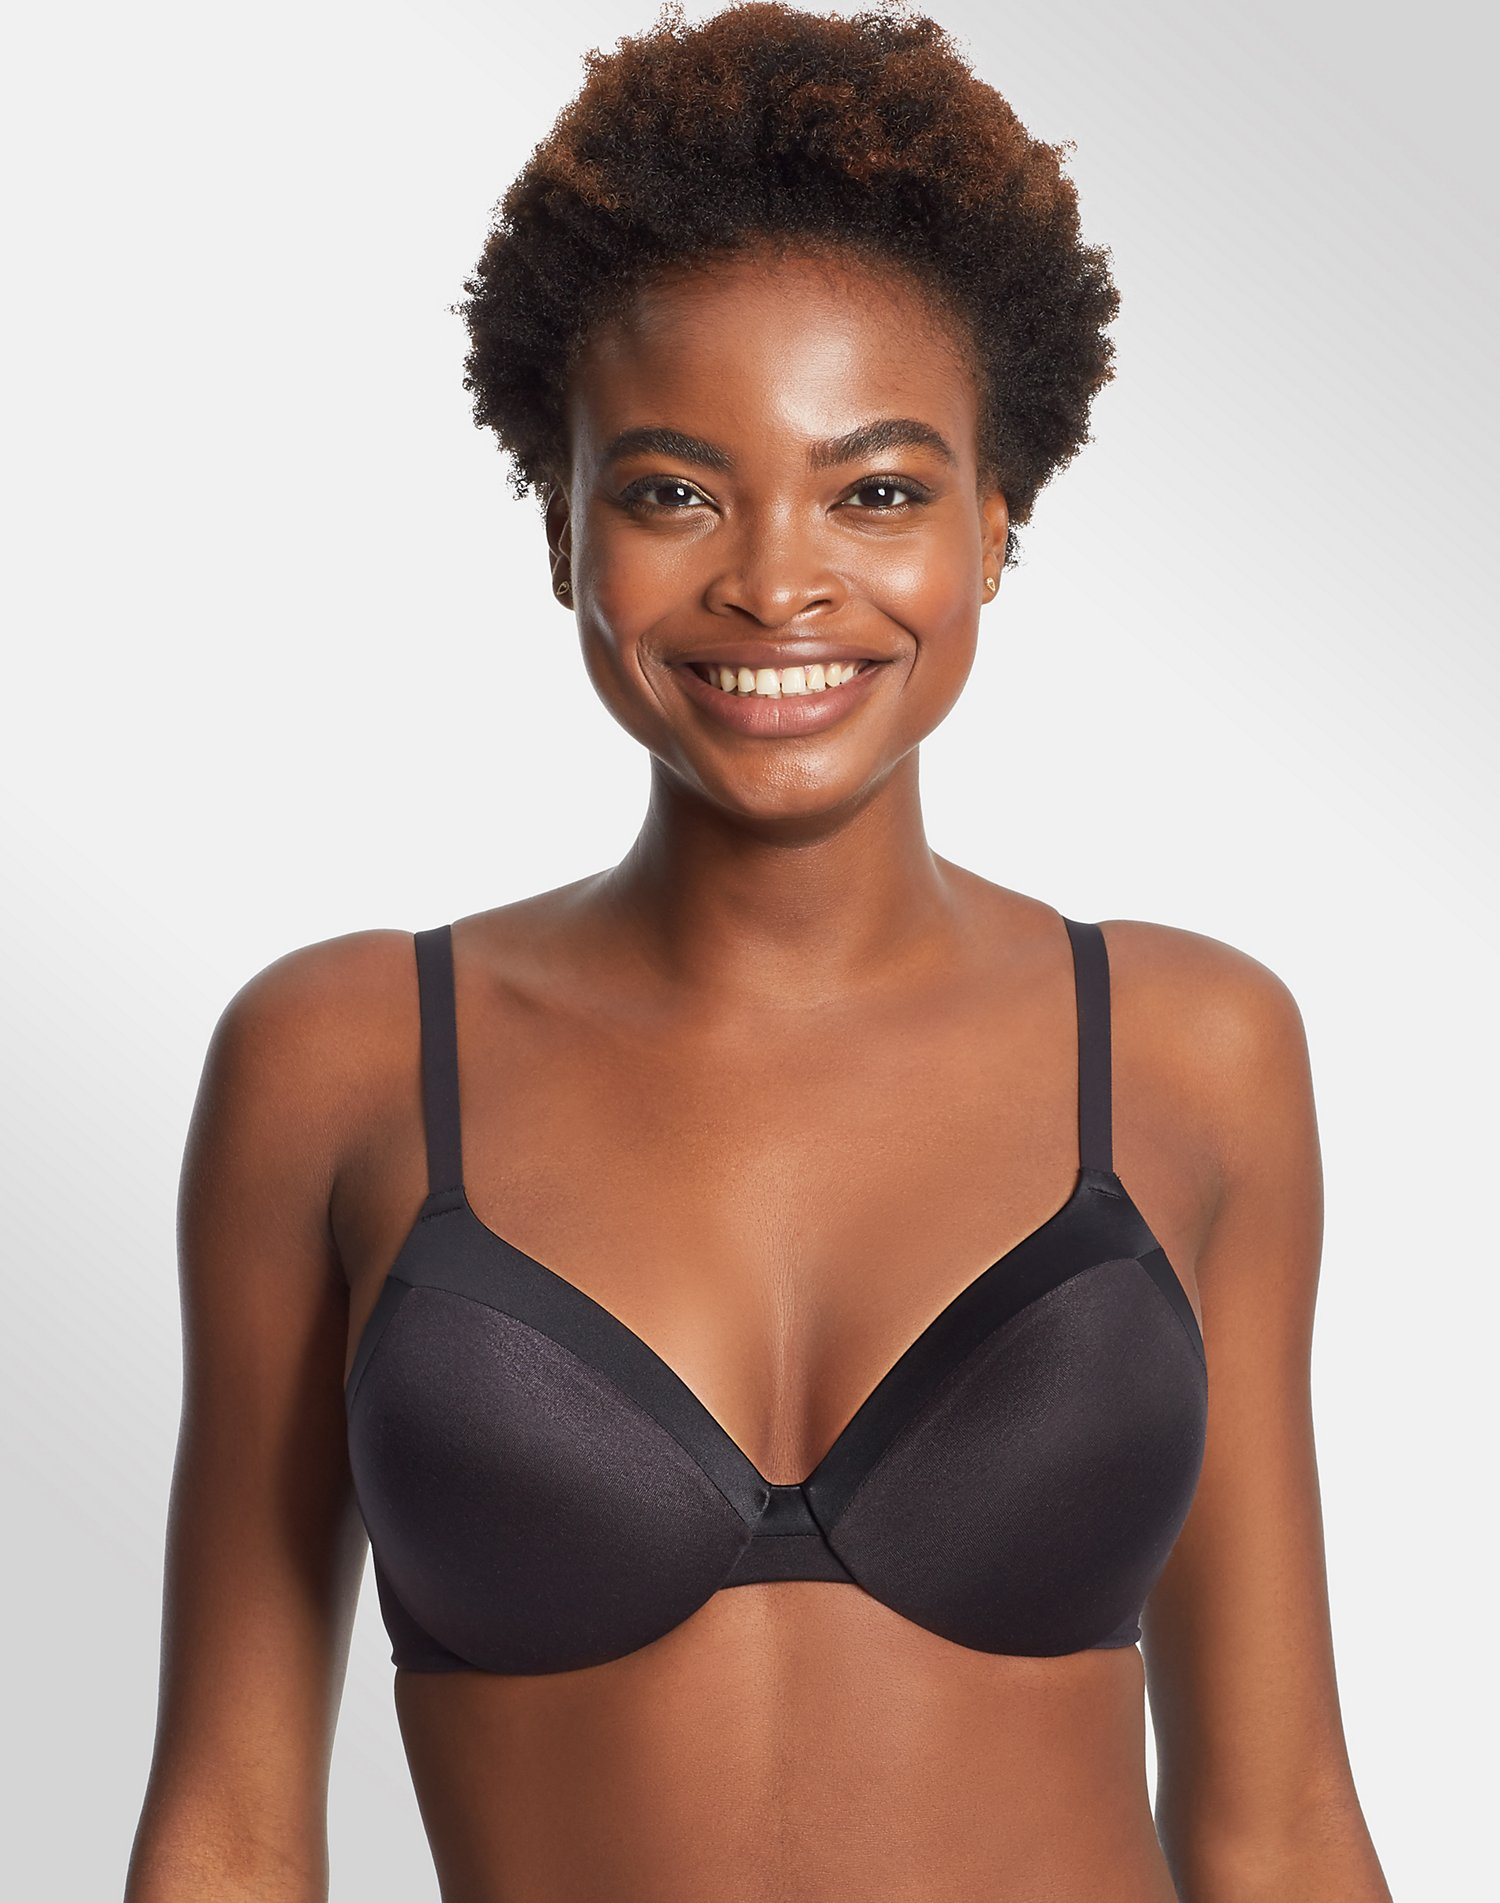 fca08ed668 Maidenform T-Shirt Bra with Extra Coverage